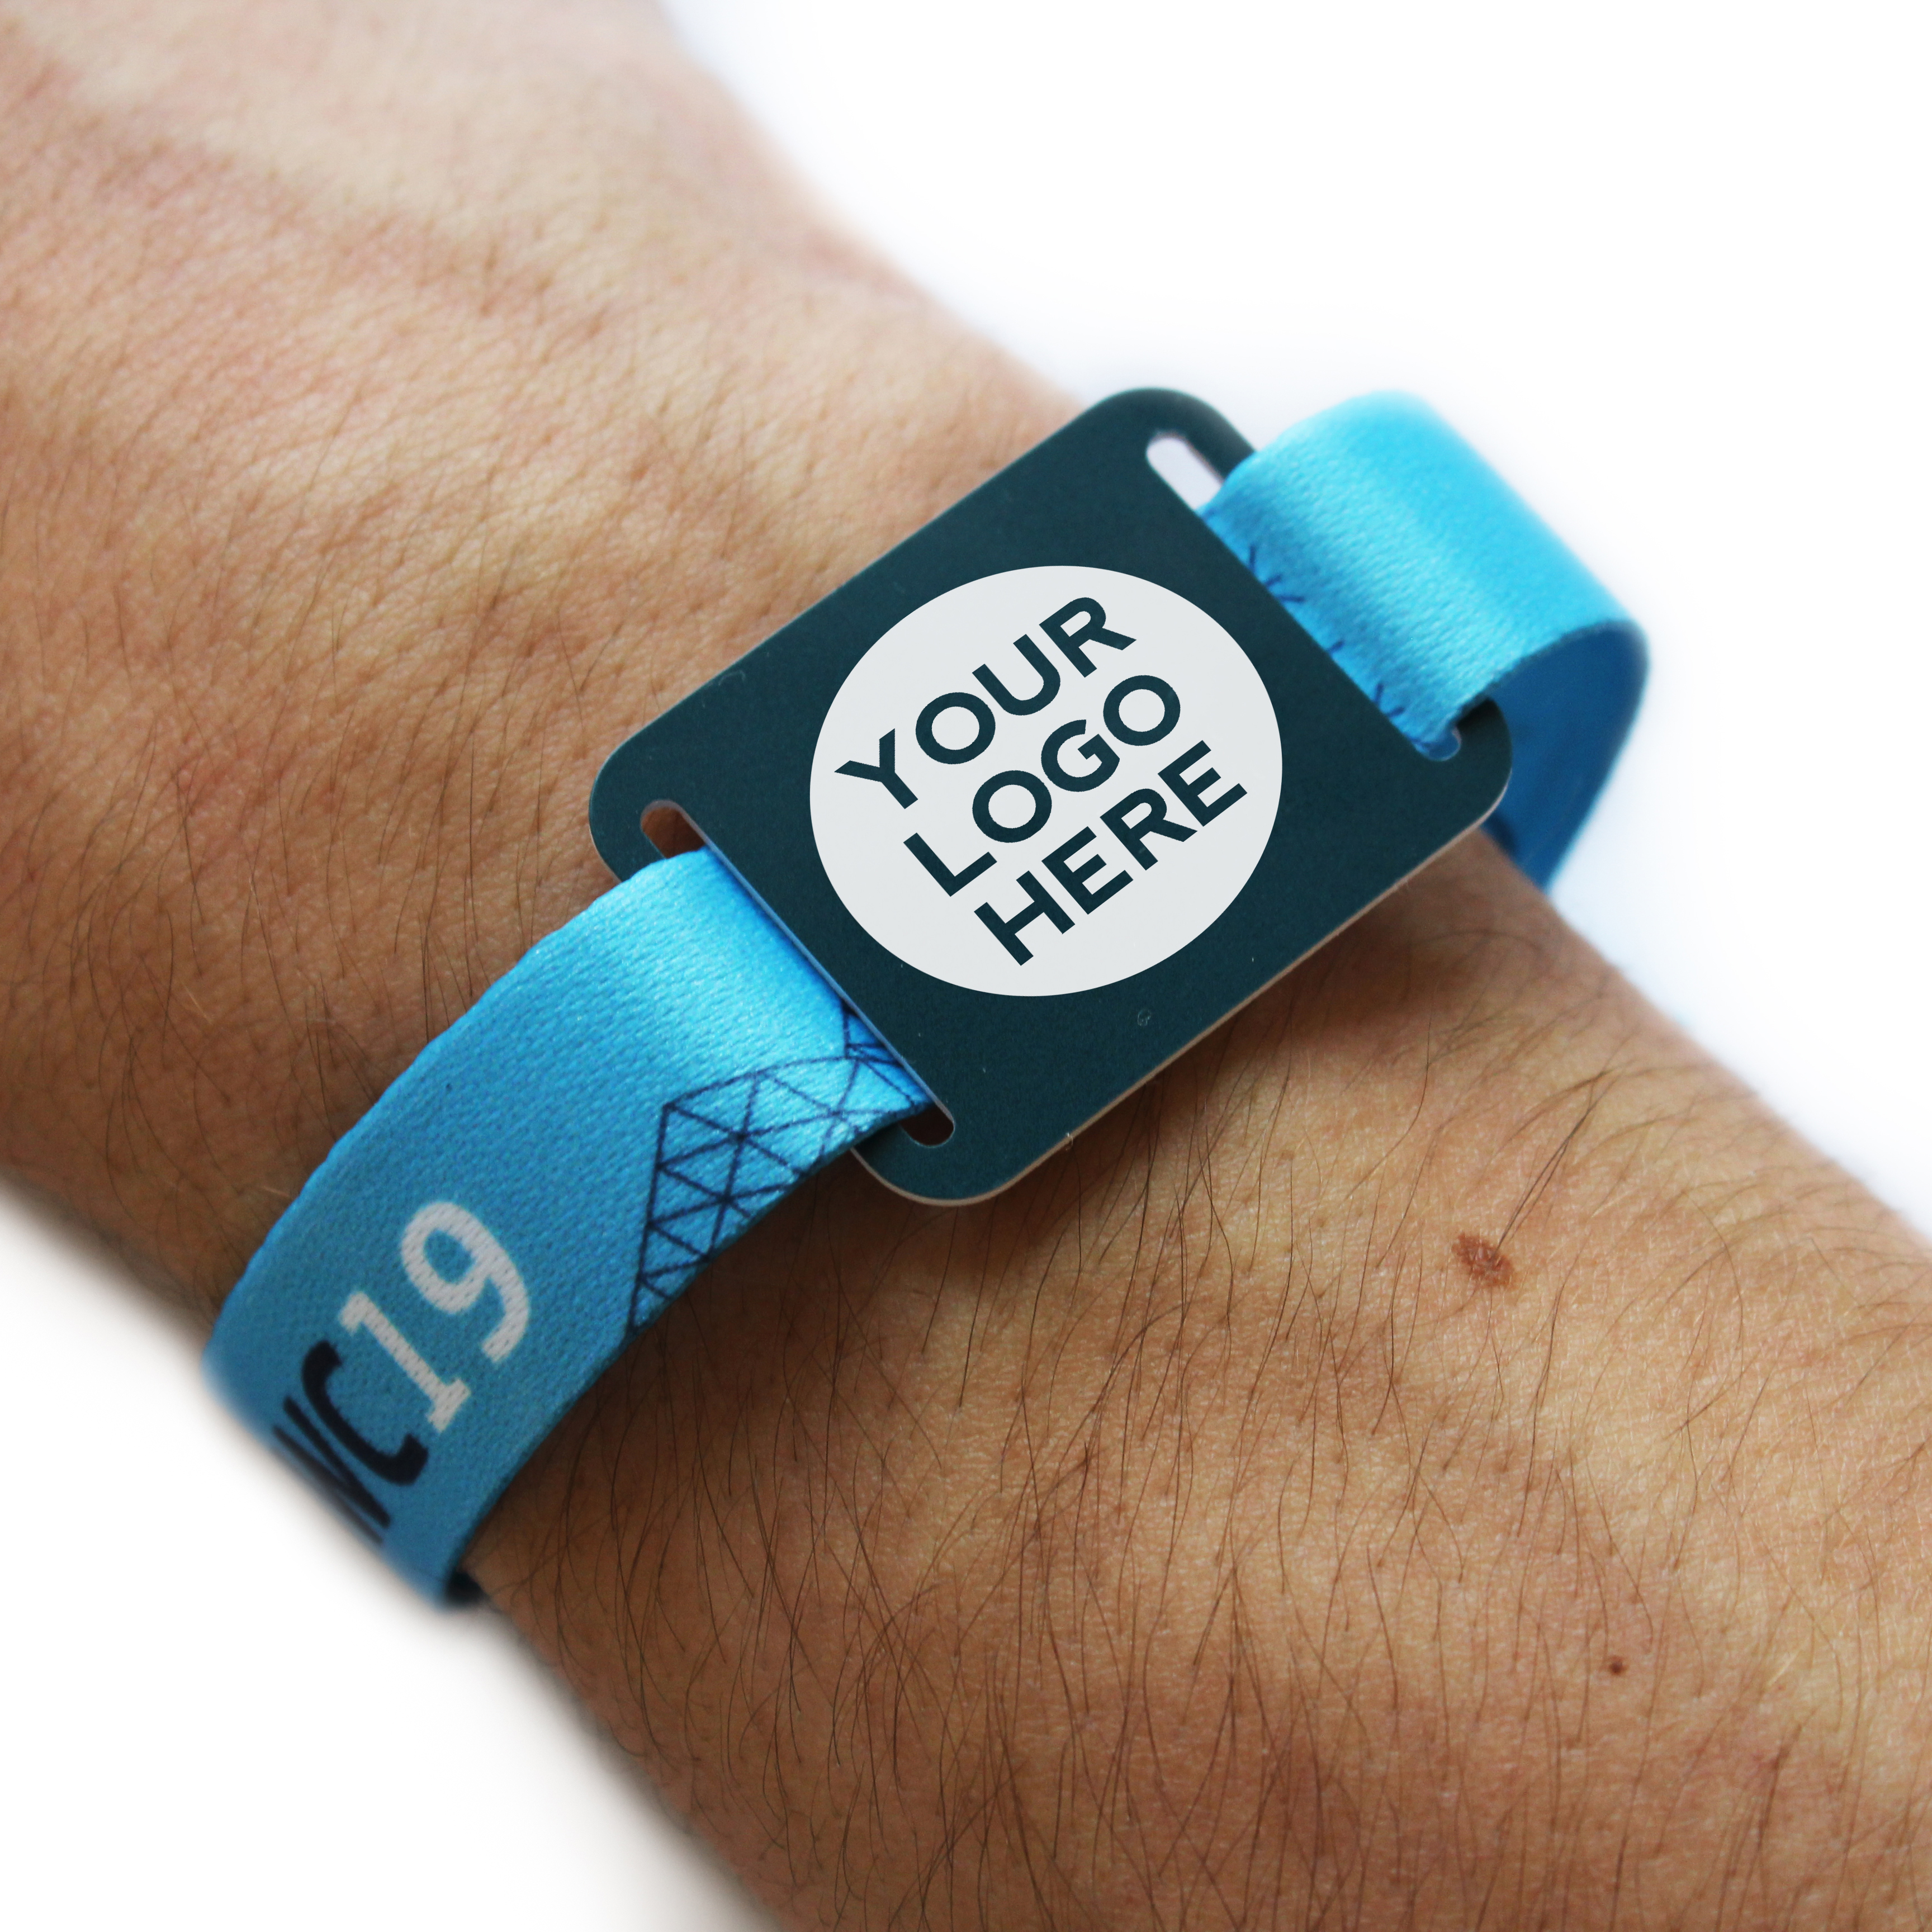 Branded woven wristbands for events